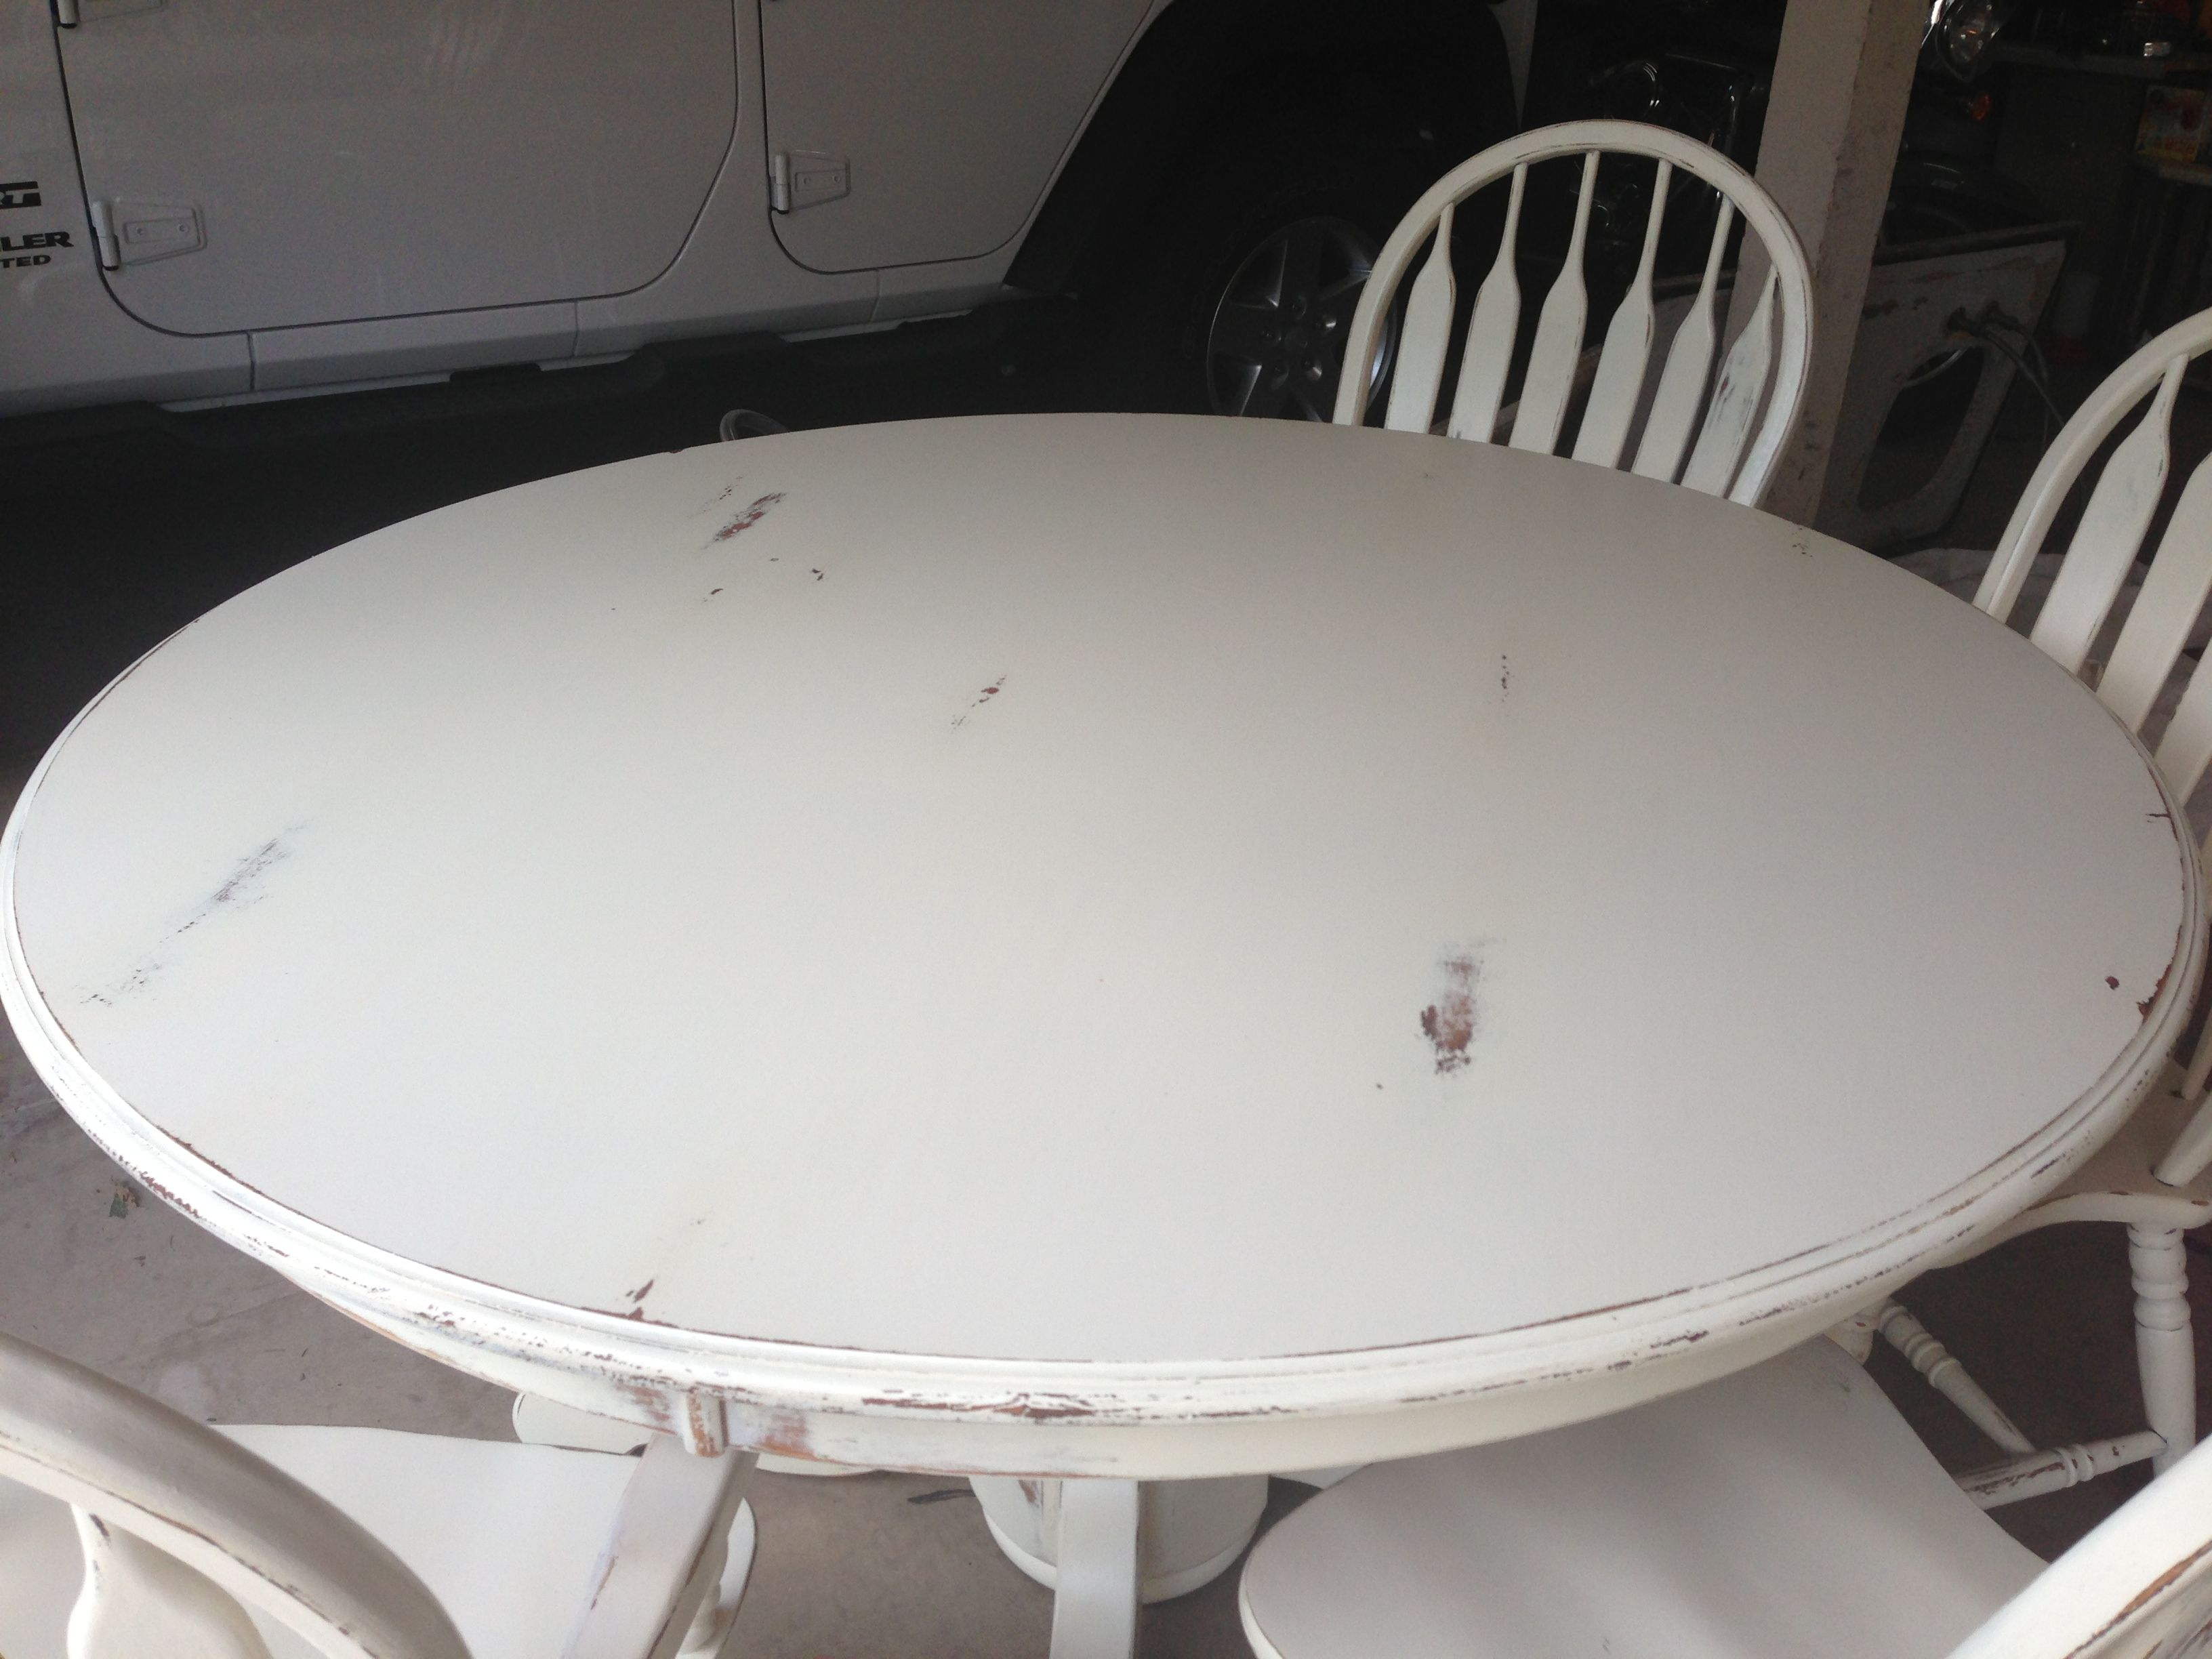 diy furniture refinishing projects. Refinished Distressed Painted Kitchen Table In Cream White. Refurbished, Furniture Ideas, DIY Diy Refinishing Projects